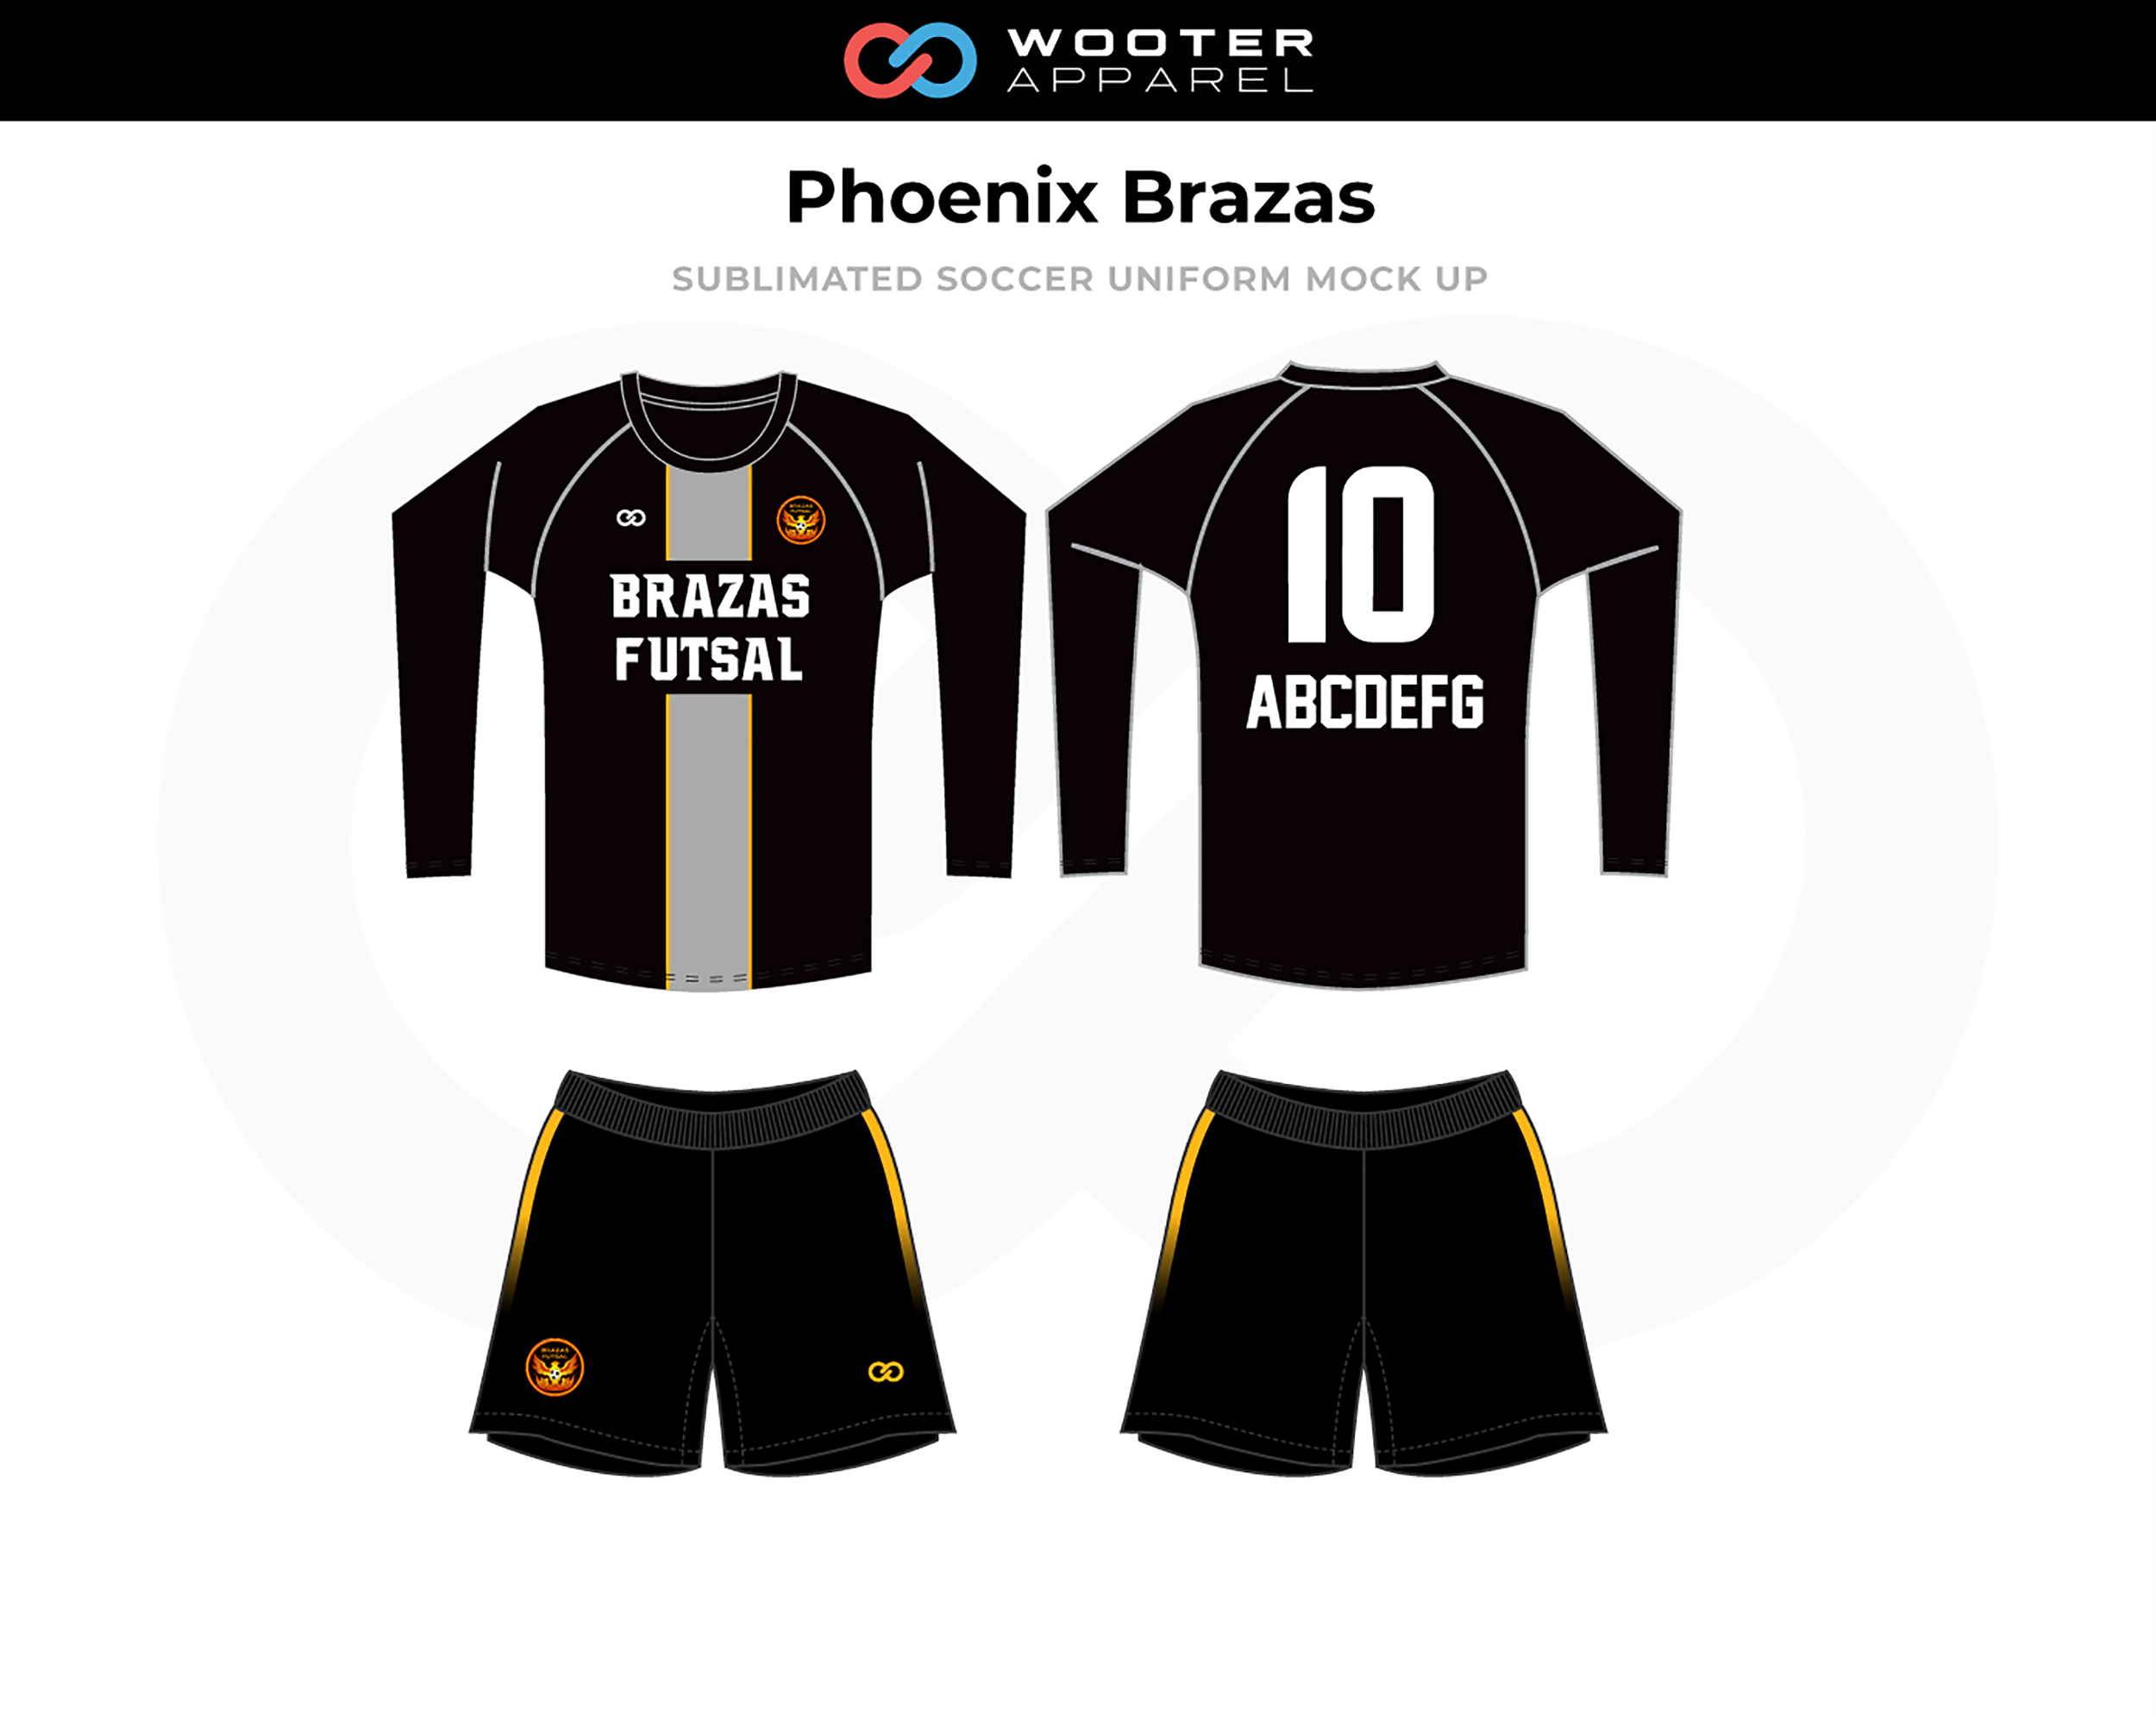 PHOENIX BRAZAS Black White Gray Soccer Uniforms, Long-Sleeved Jersey, and Shorts